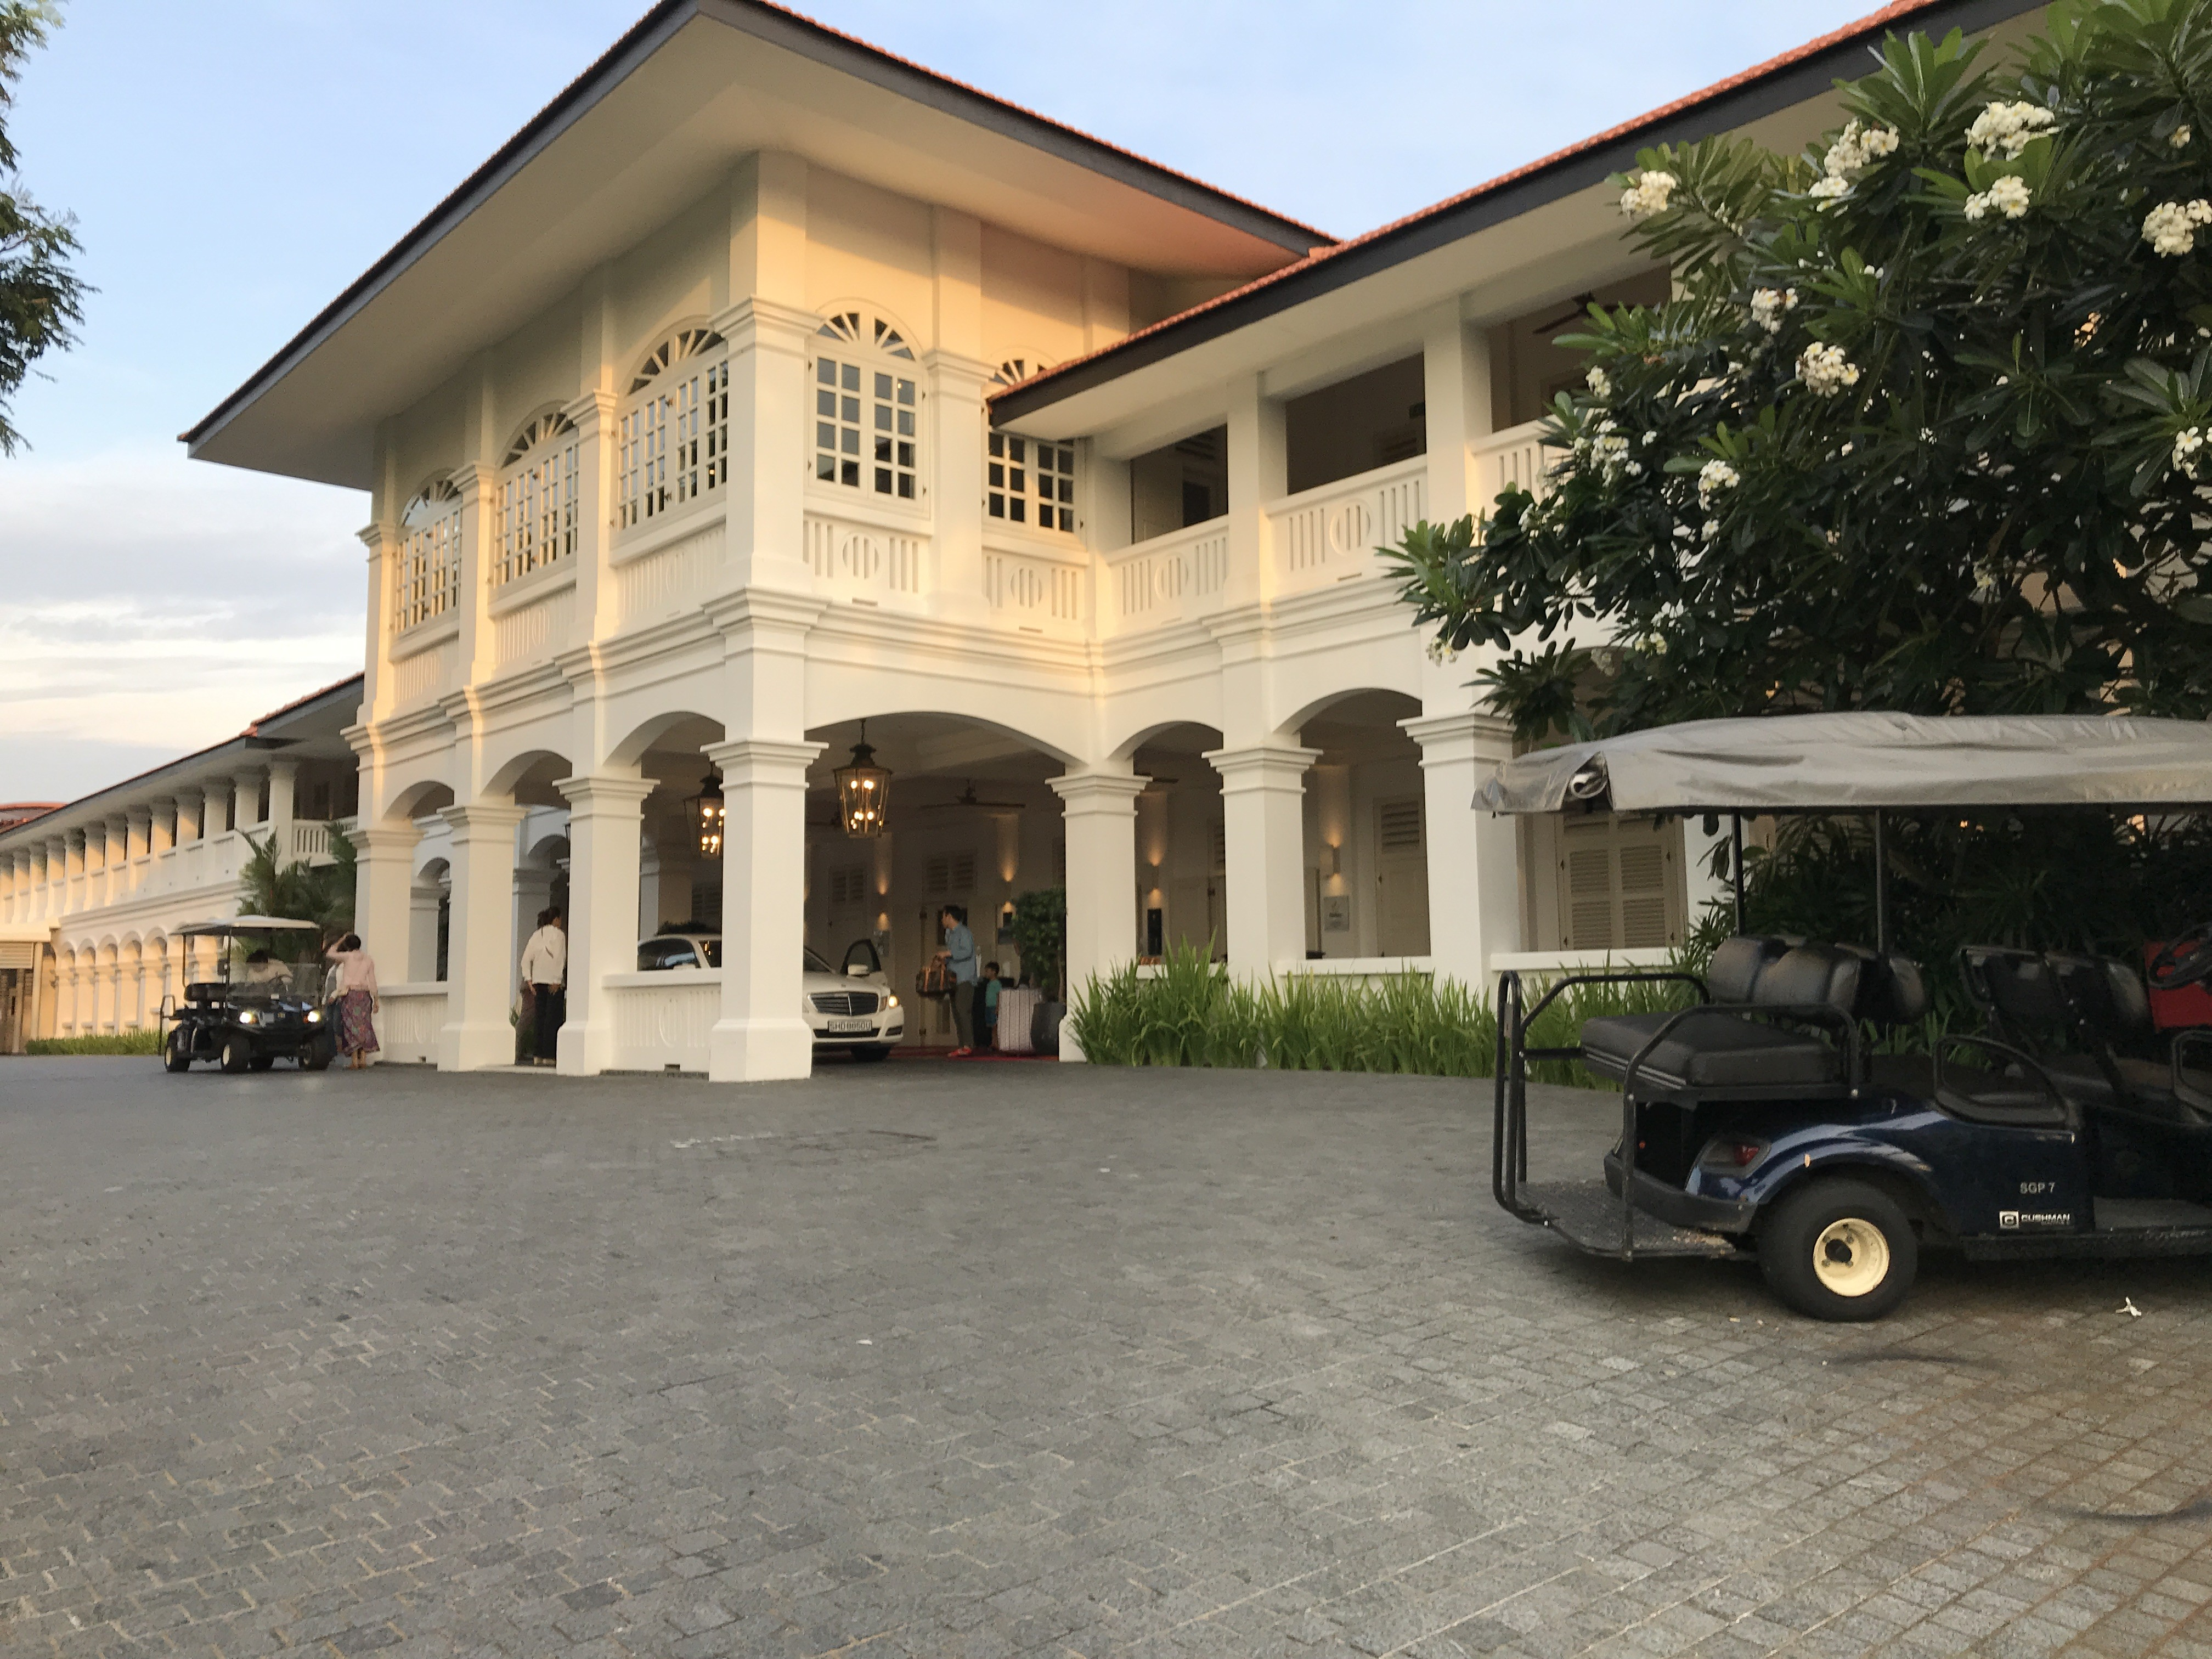 The Trump-Kim summit is rumored to be taking place at the Capella Singapore. (Kristina Wong/Breitbart News)